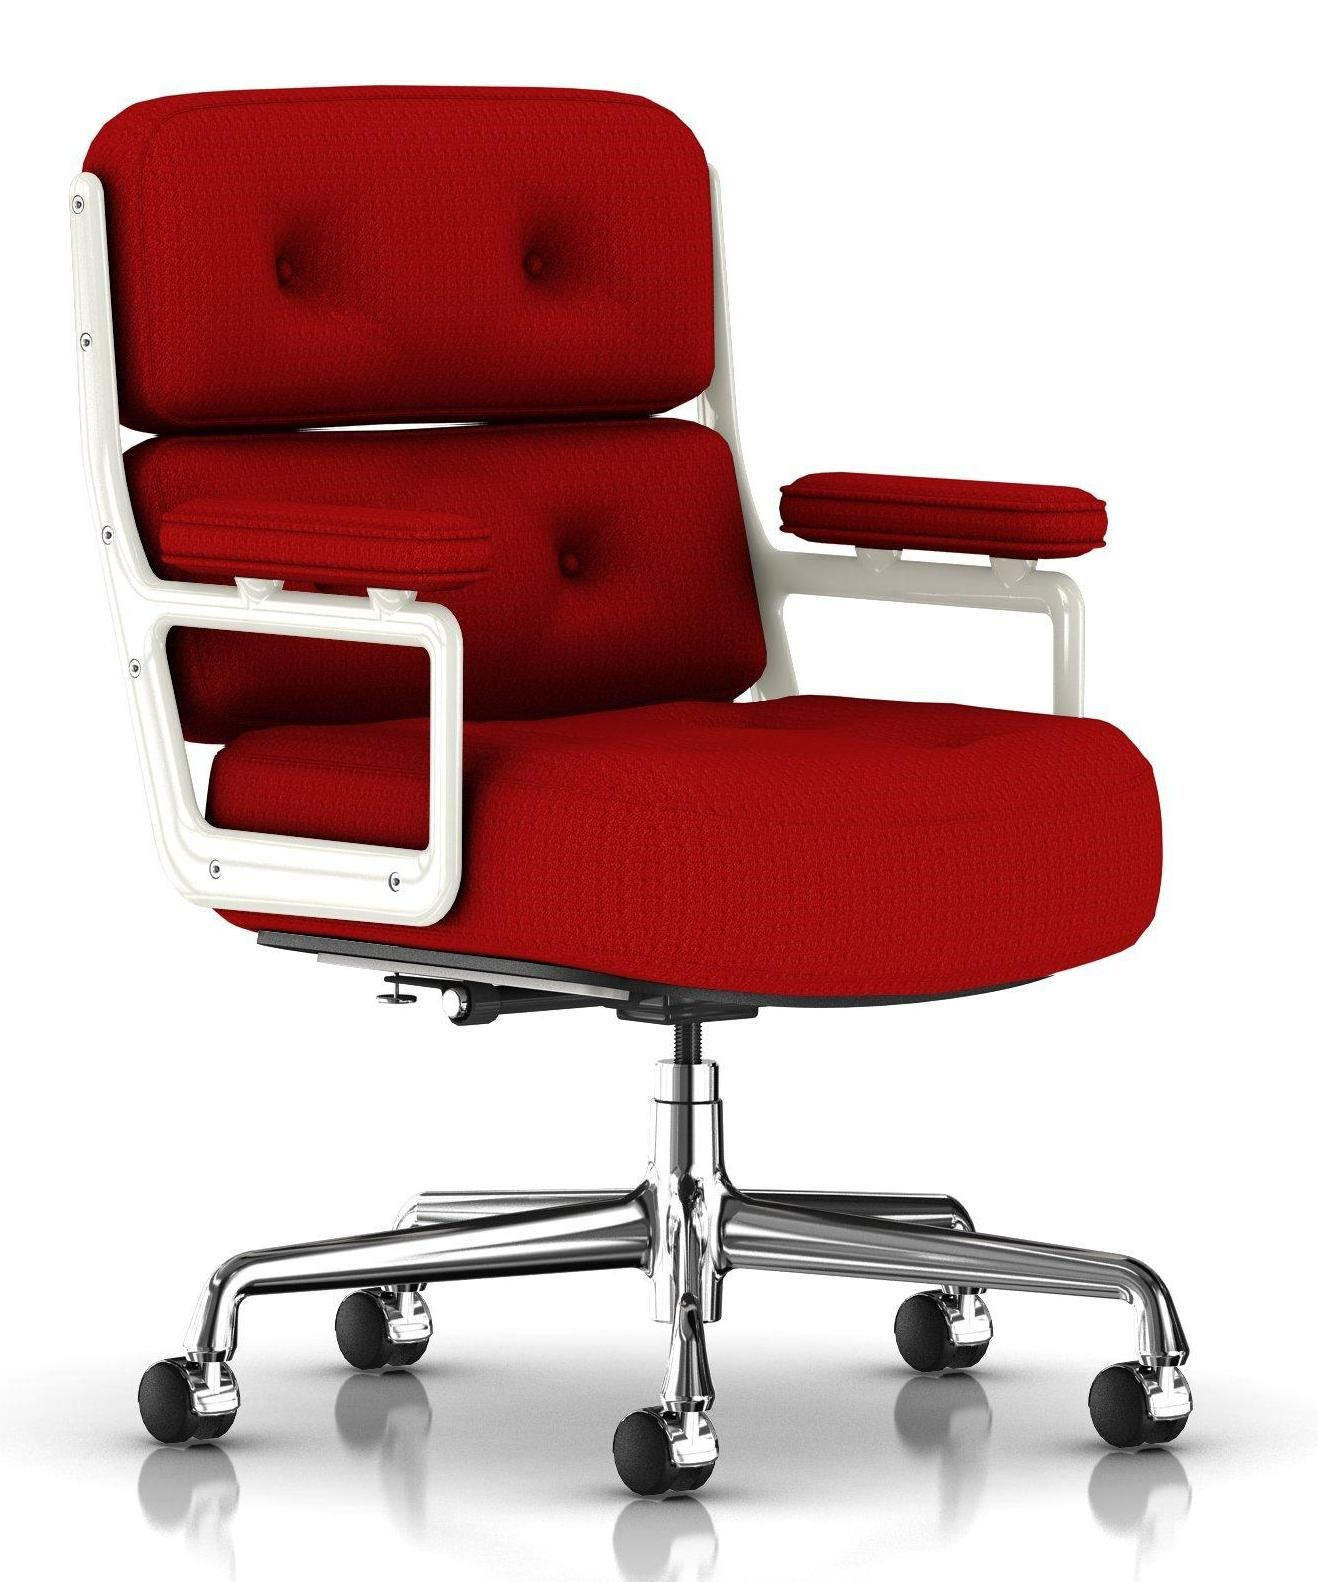 Red Desk Chair Staples Wedding Covers Halifax Pin By Easy Wood Projects On Modern Home Interior Ideas Pinterest Office Chairs Best Sit Stand Check More At Http